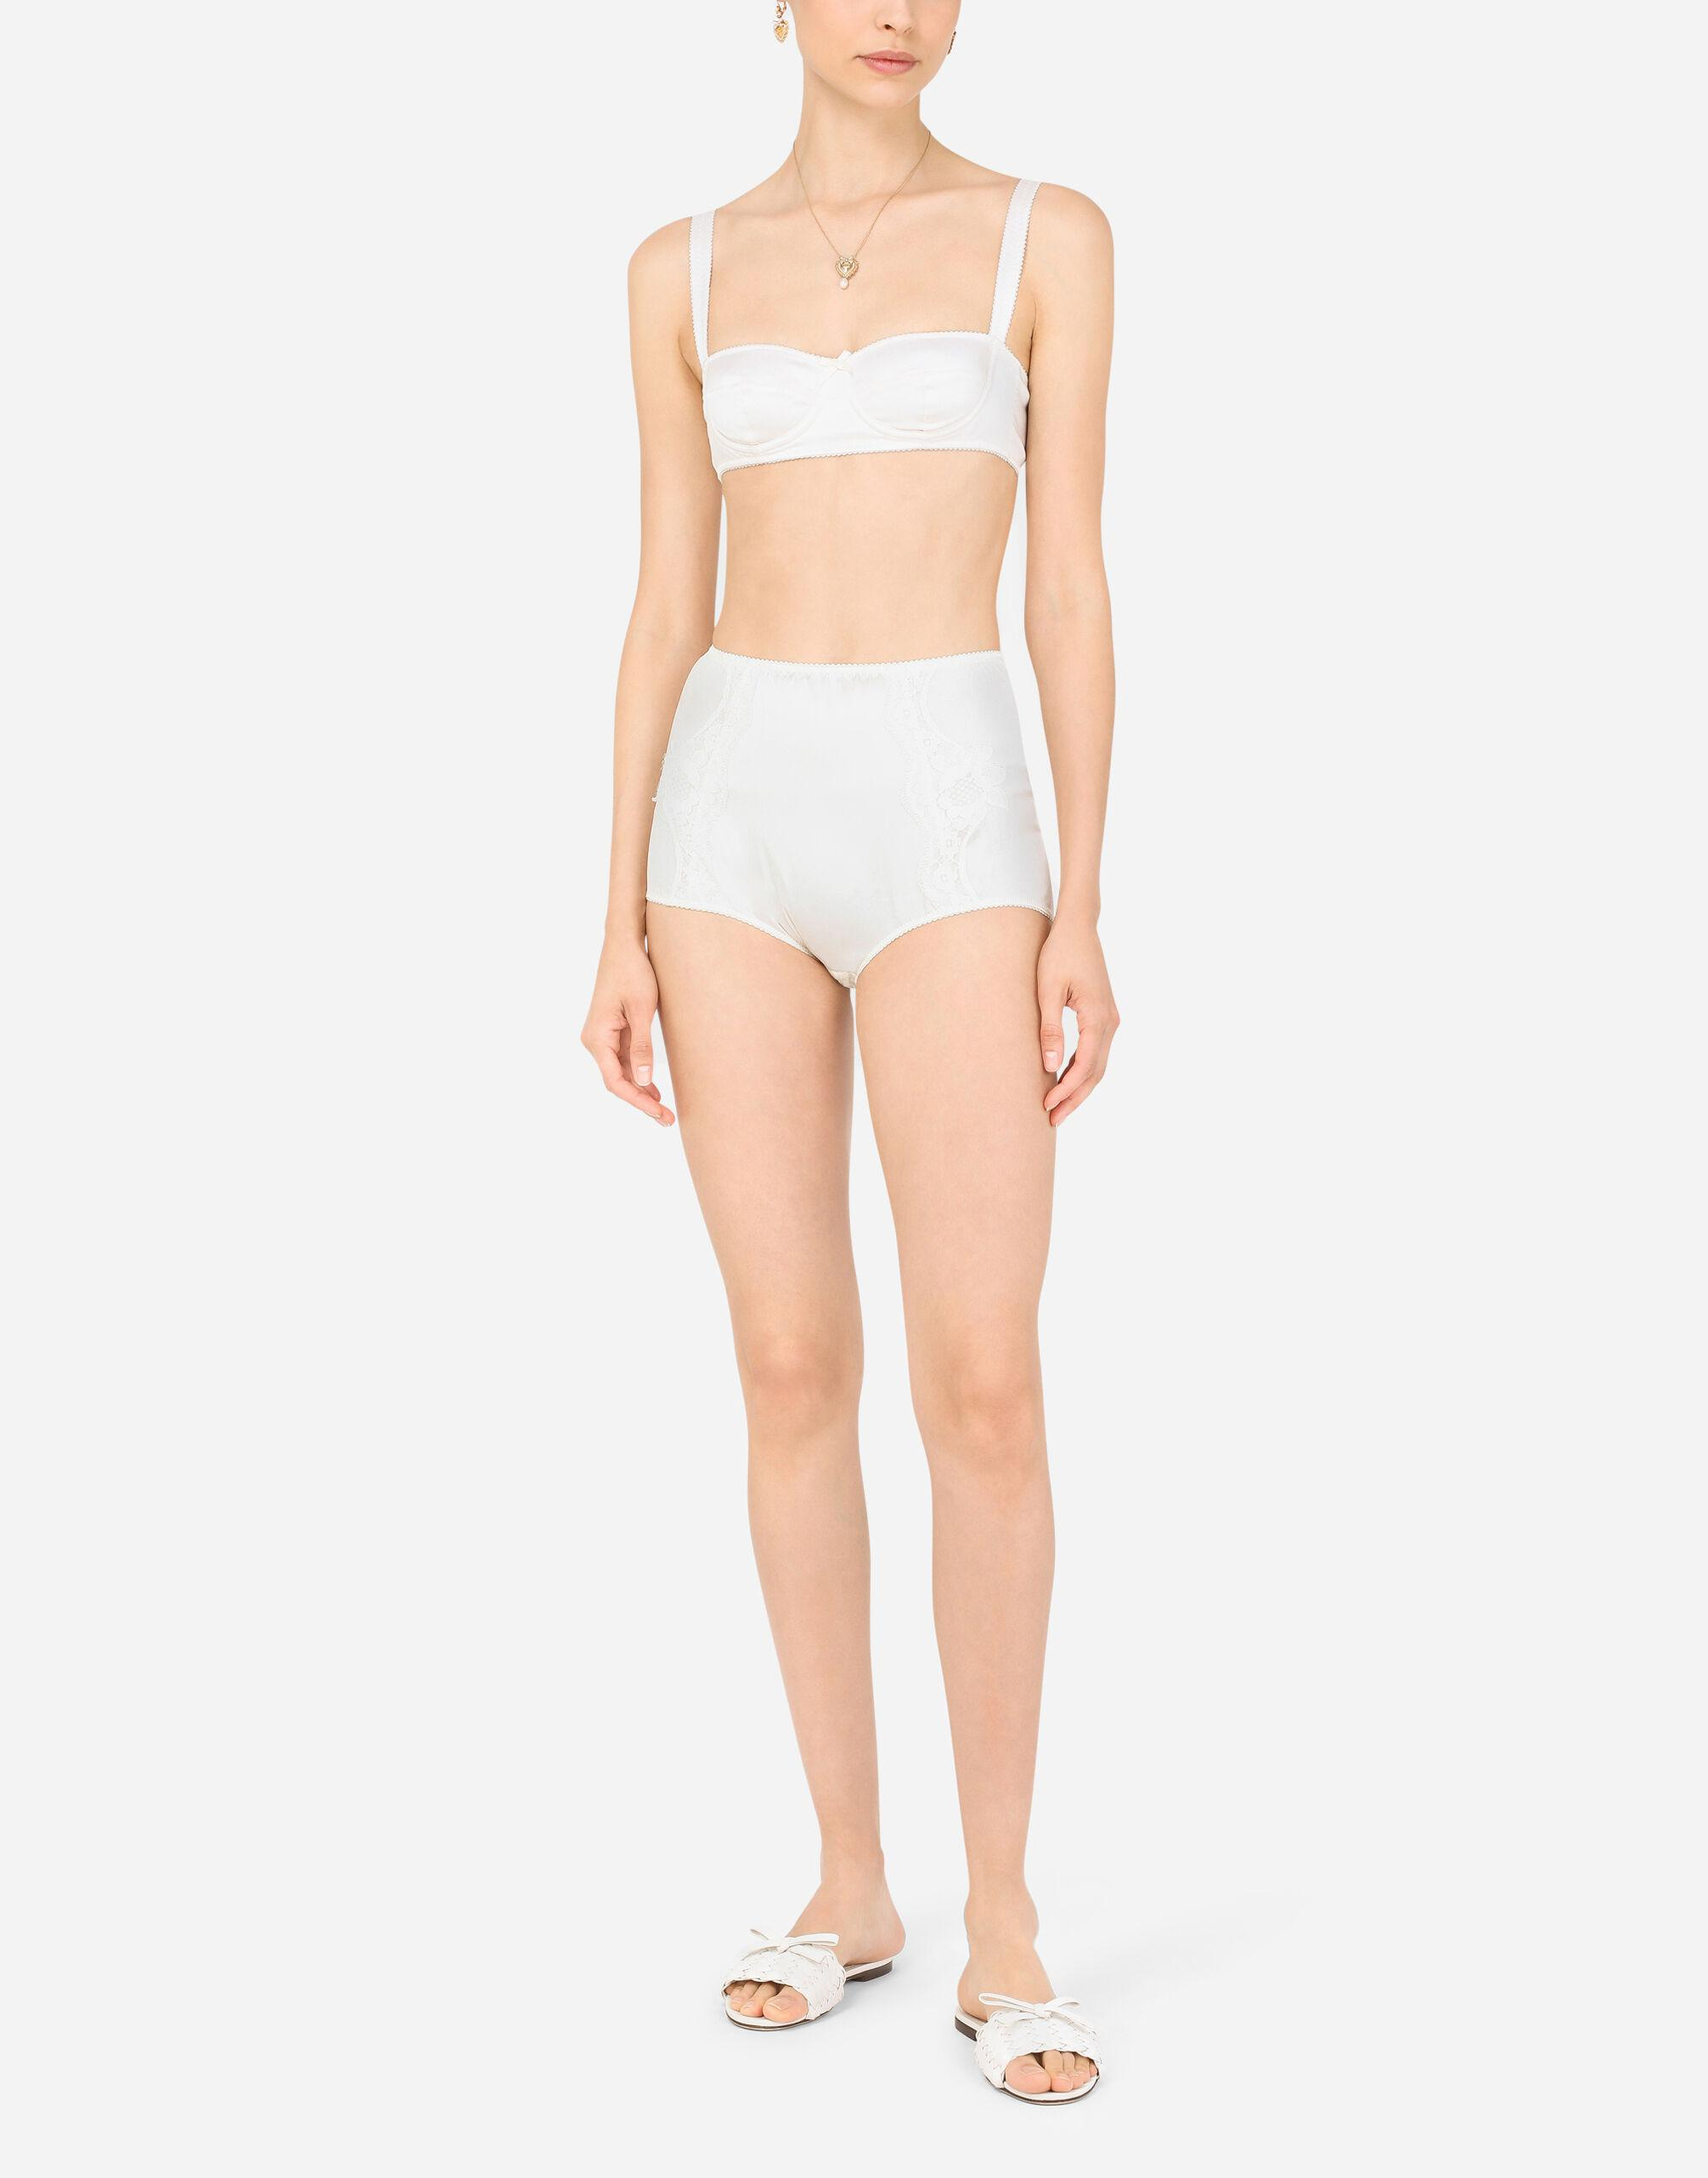 Satin high-waisted panties with lace details